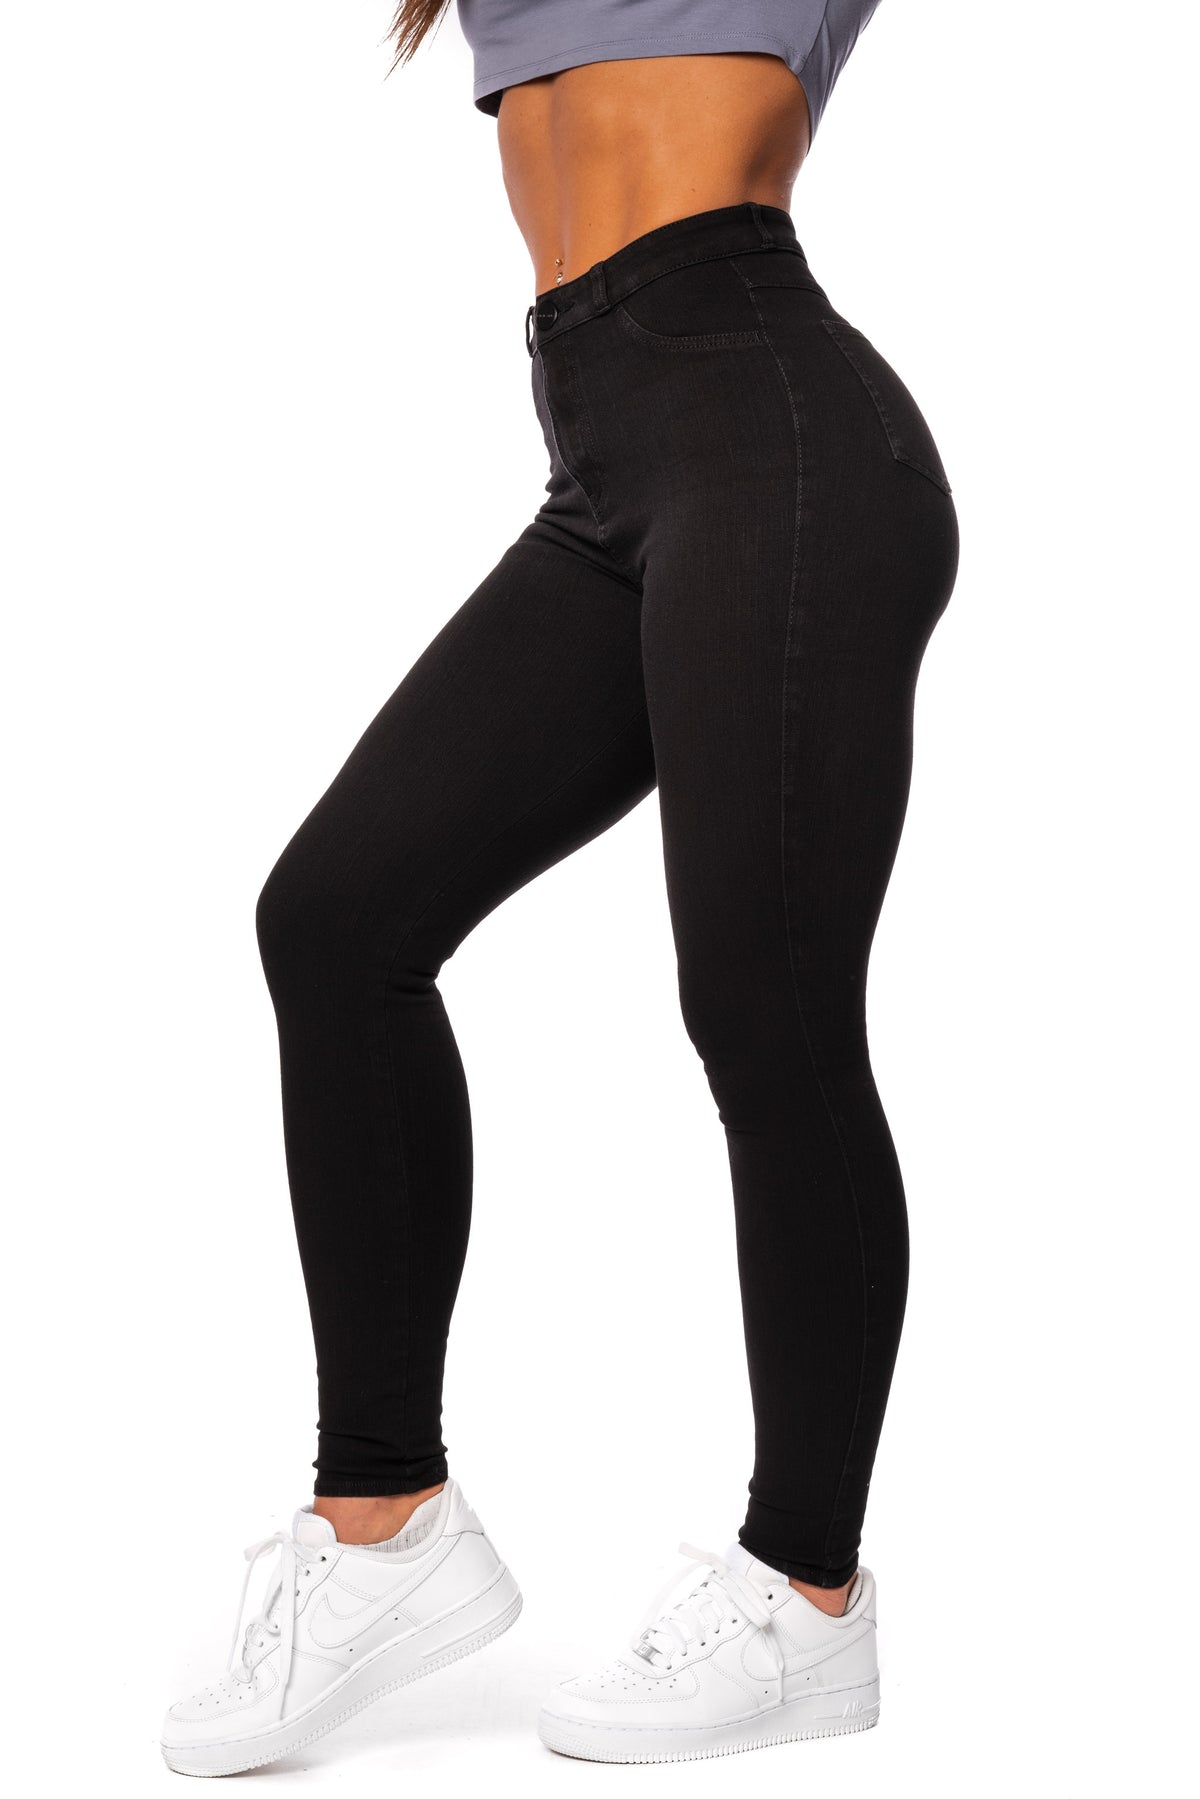 Womens 360 High Waisted Fitjeans - Black